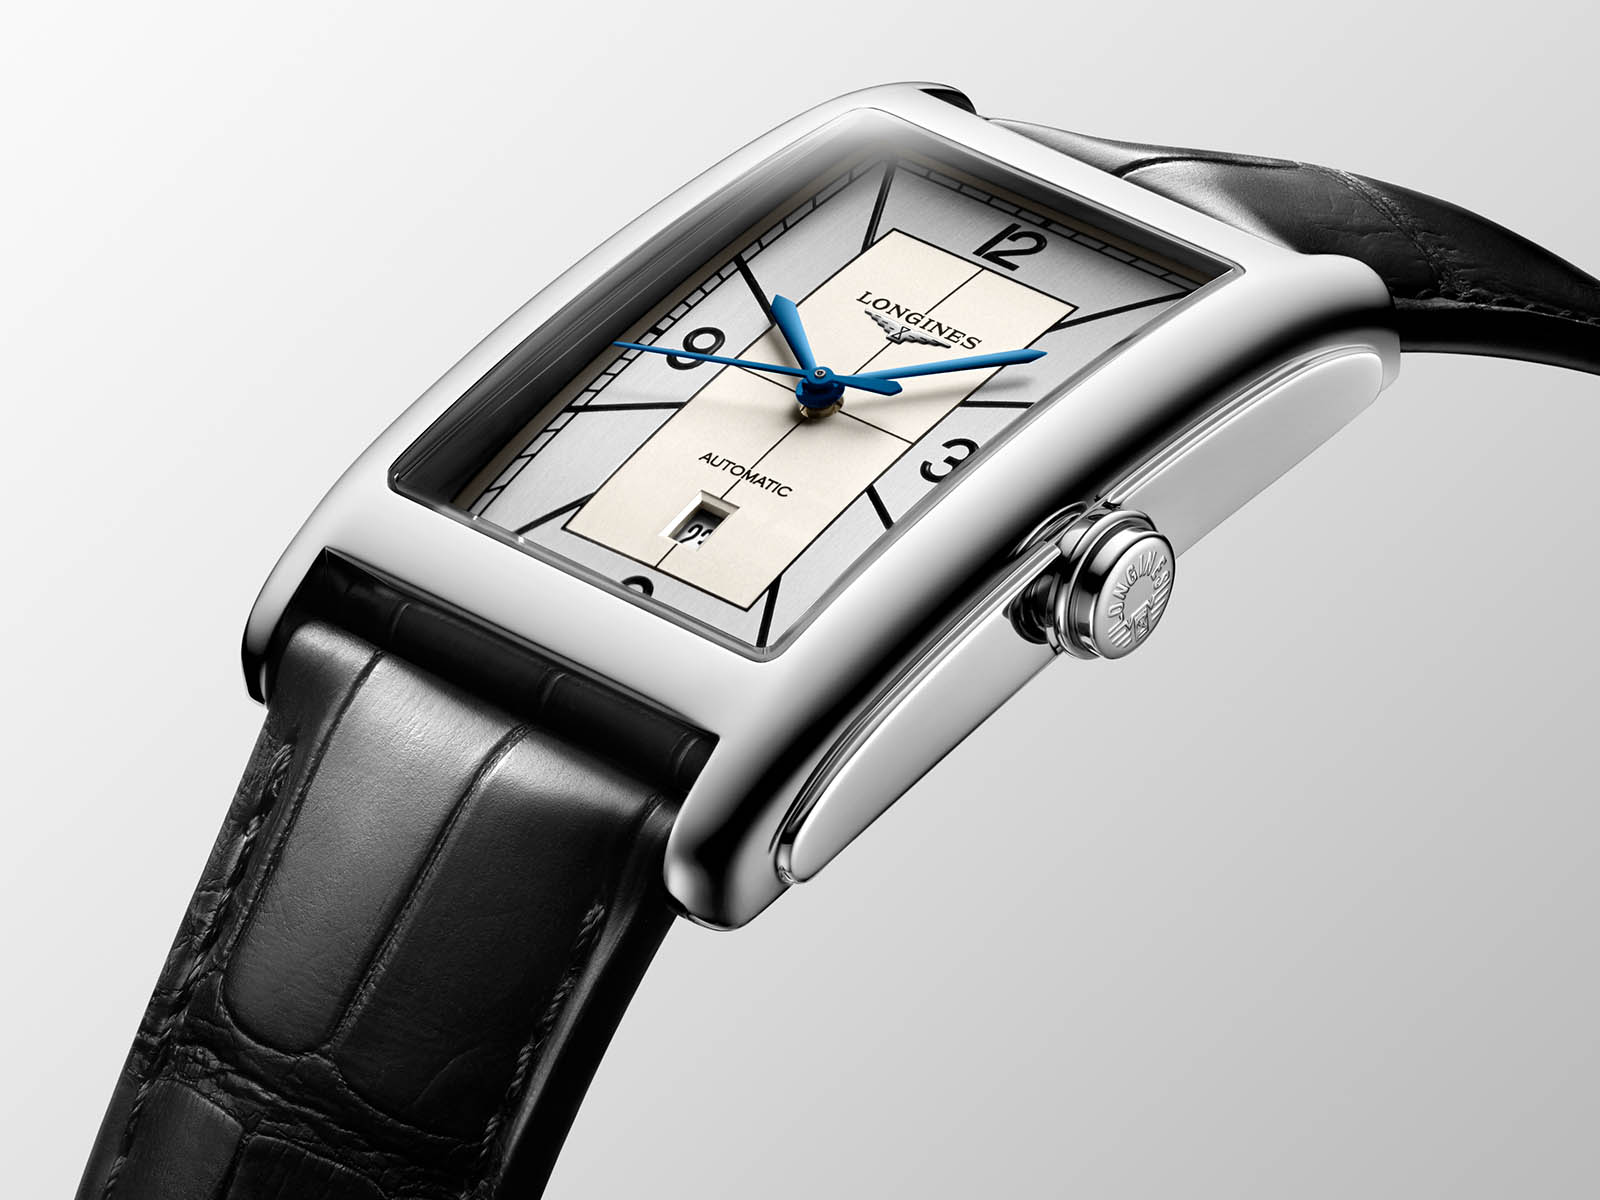 l5-767-4-73-3-longines-dolcevita-automatic-art-deco-sector-dial-2.jpg